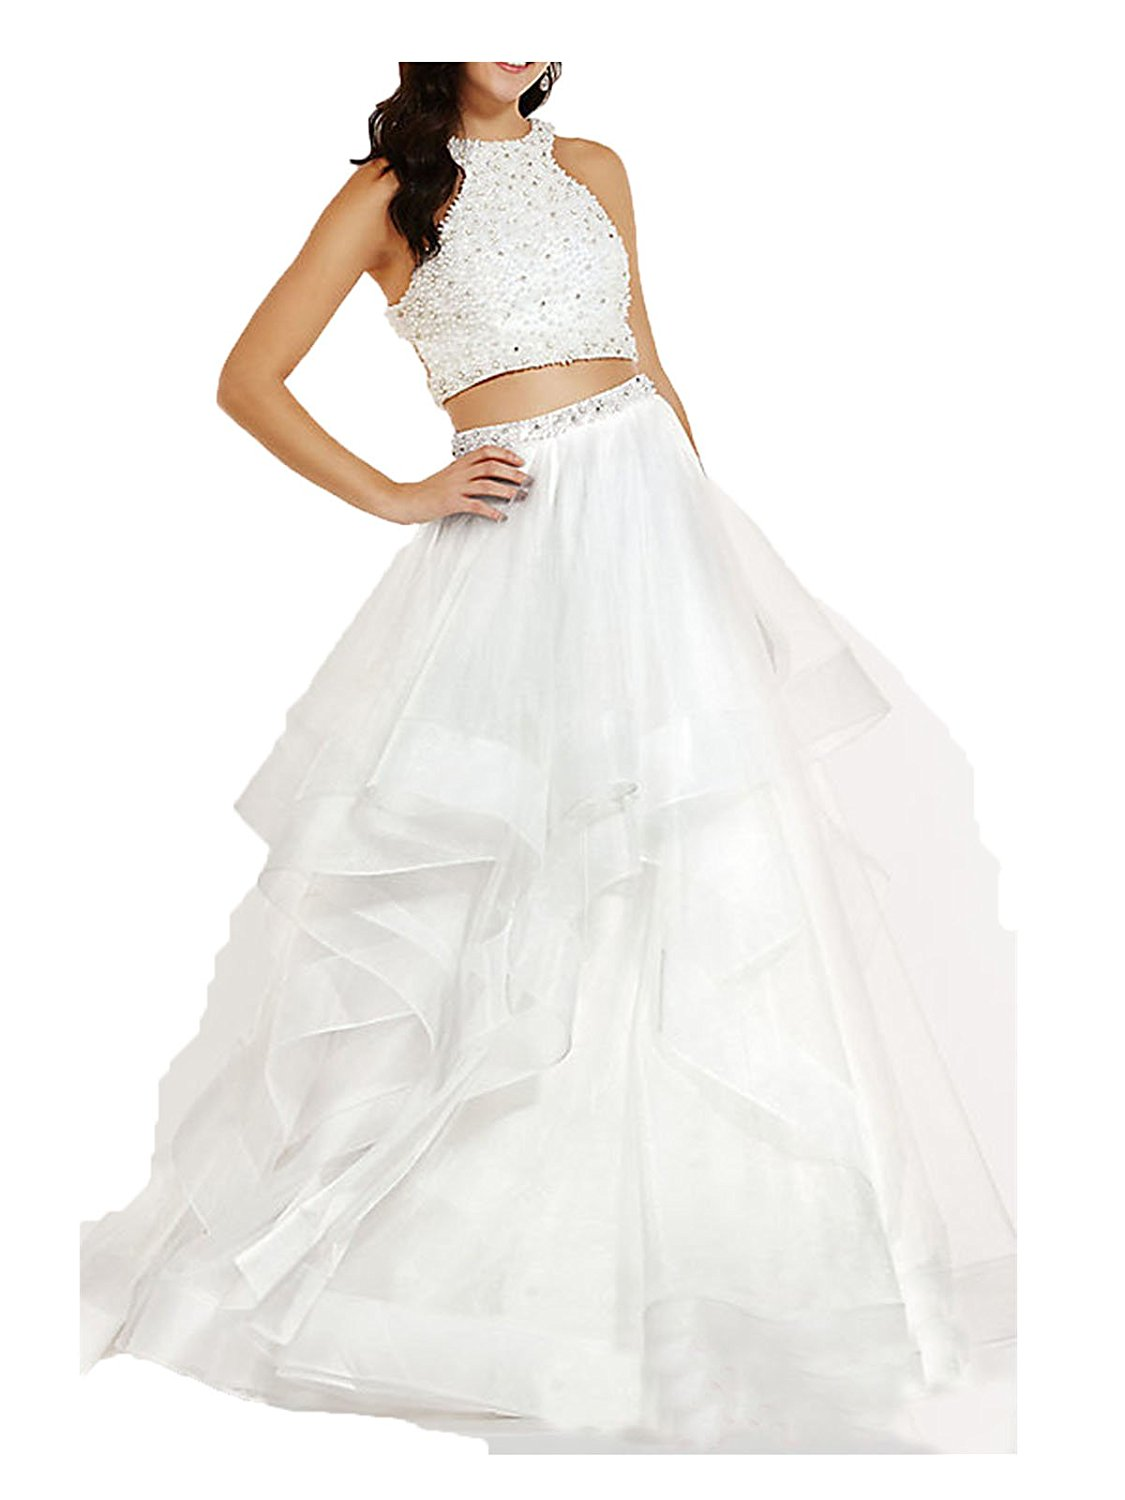 0390347f0af Amazon.com  Uryouthstyle 2017 2 Pieces A-line Quinceanera ...